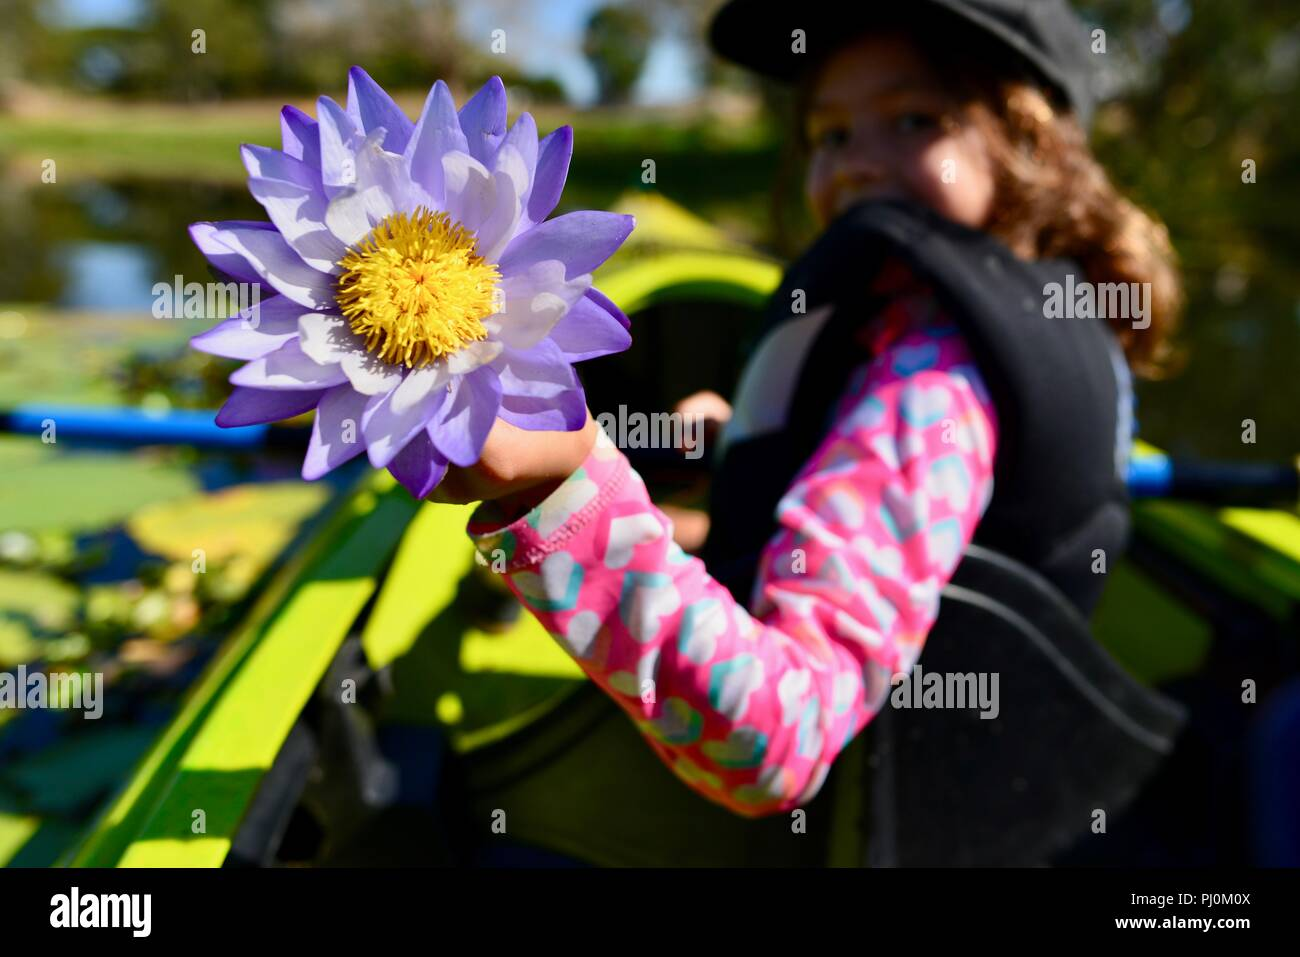 Young girl holding a purple water lily flower while smiling ross young girl holding a purple water lily flower while smiling ross river qld australia izmirmasajfo